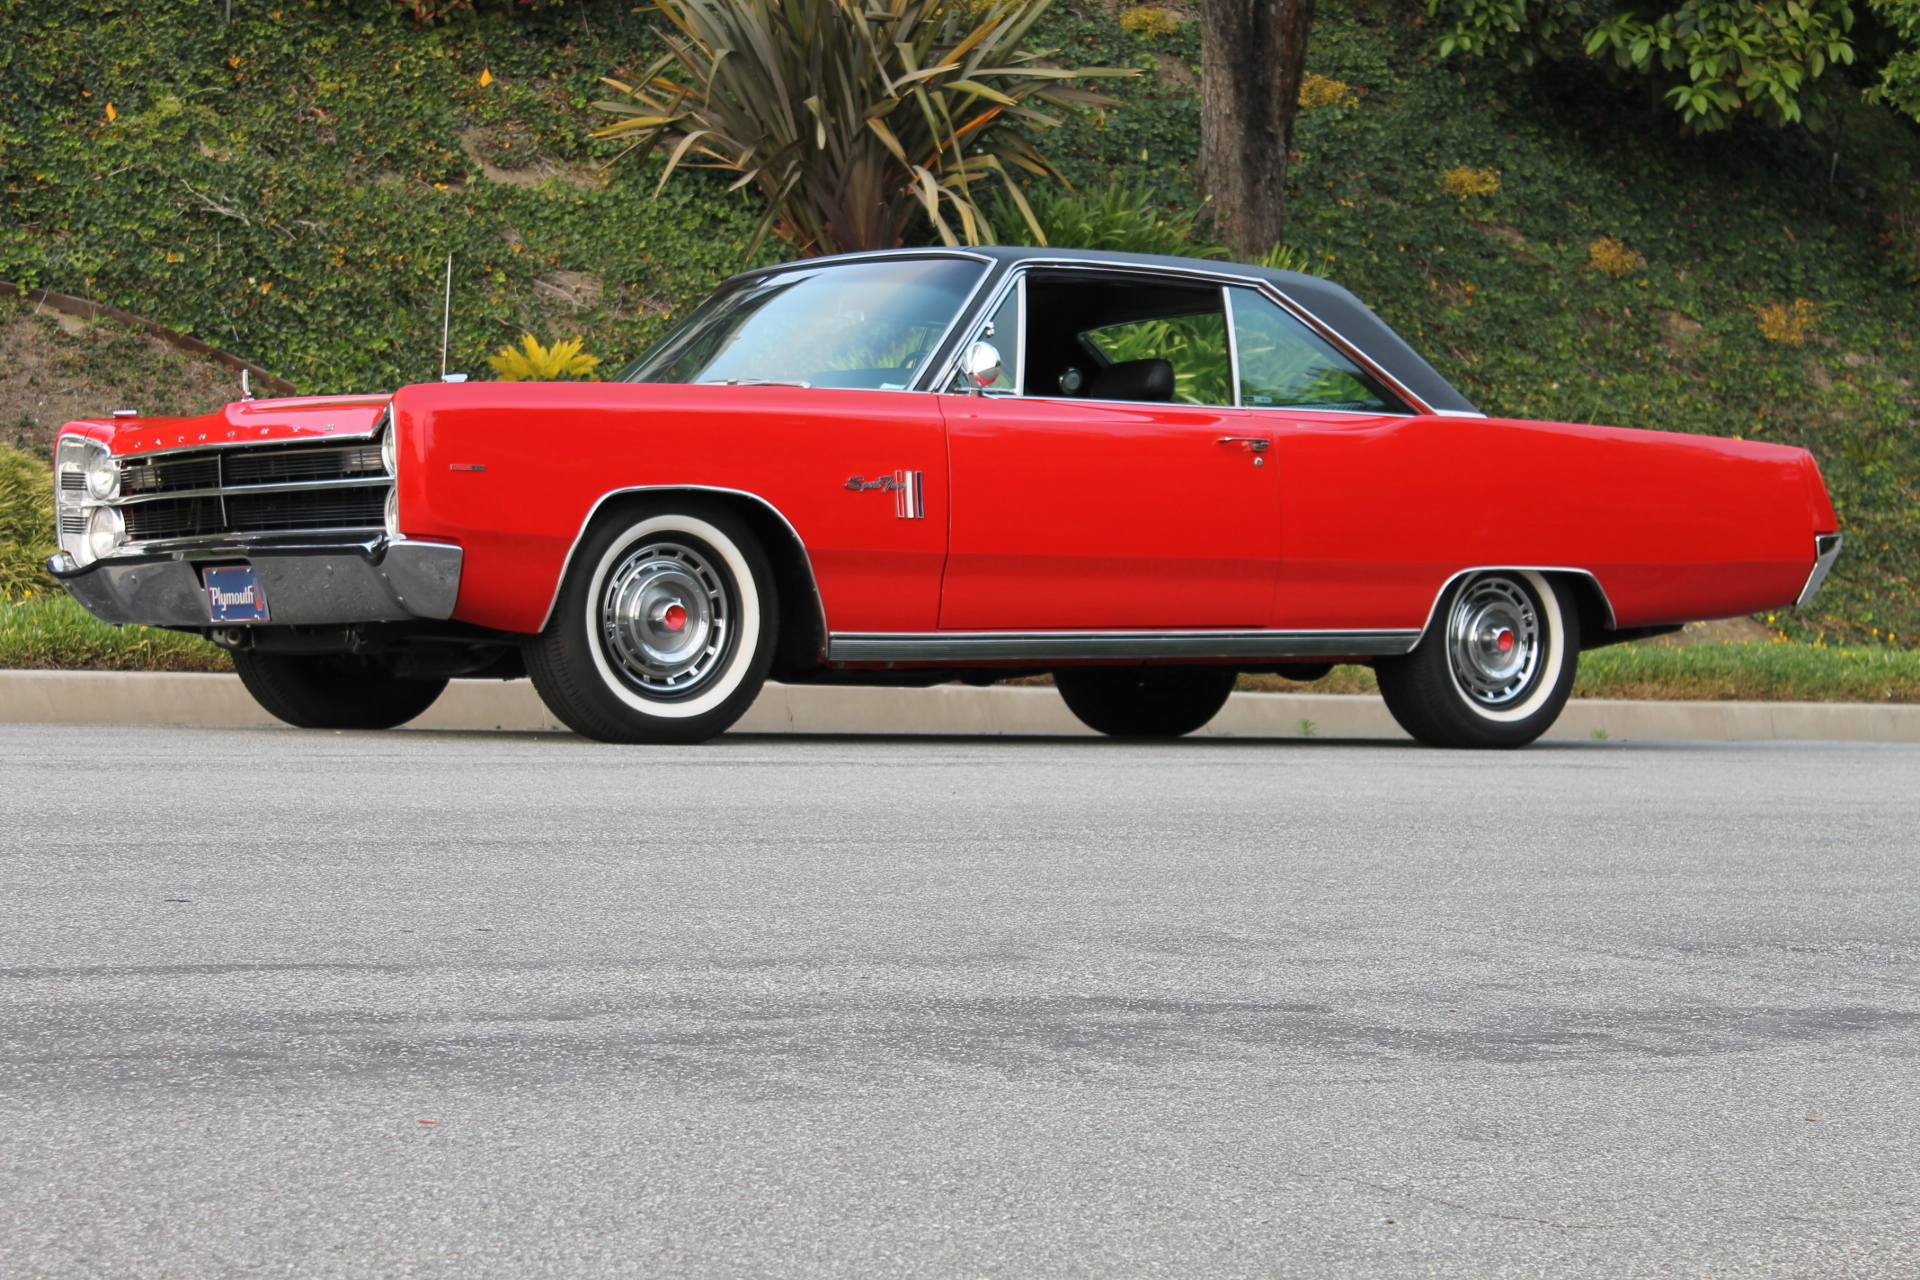 1967 Plymouth Fury #2